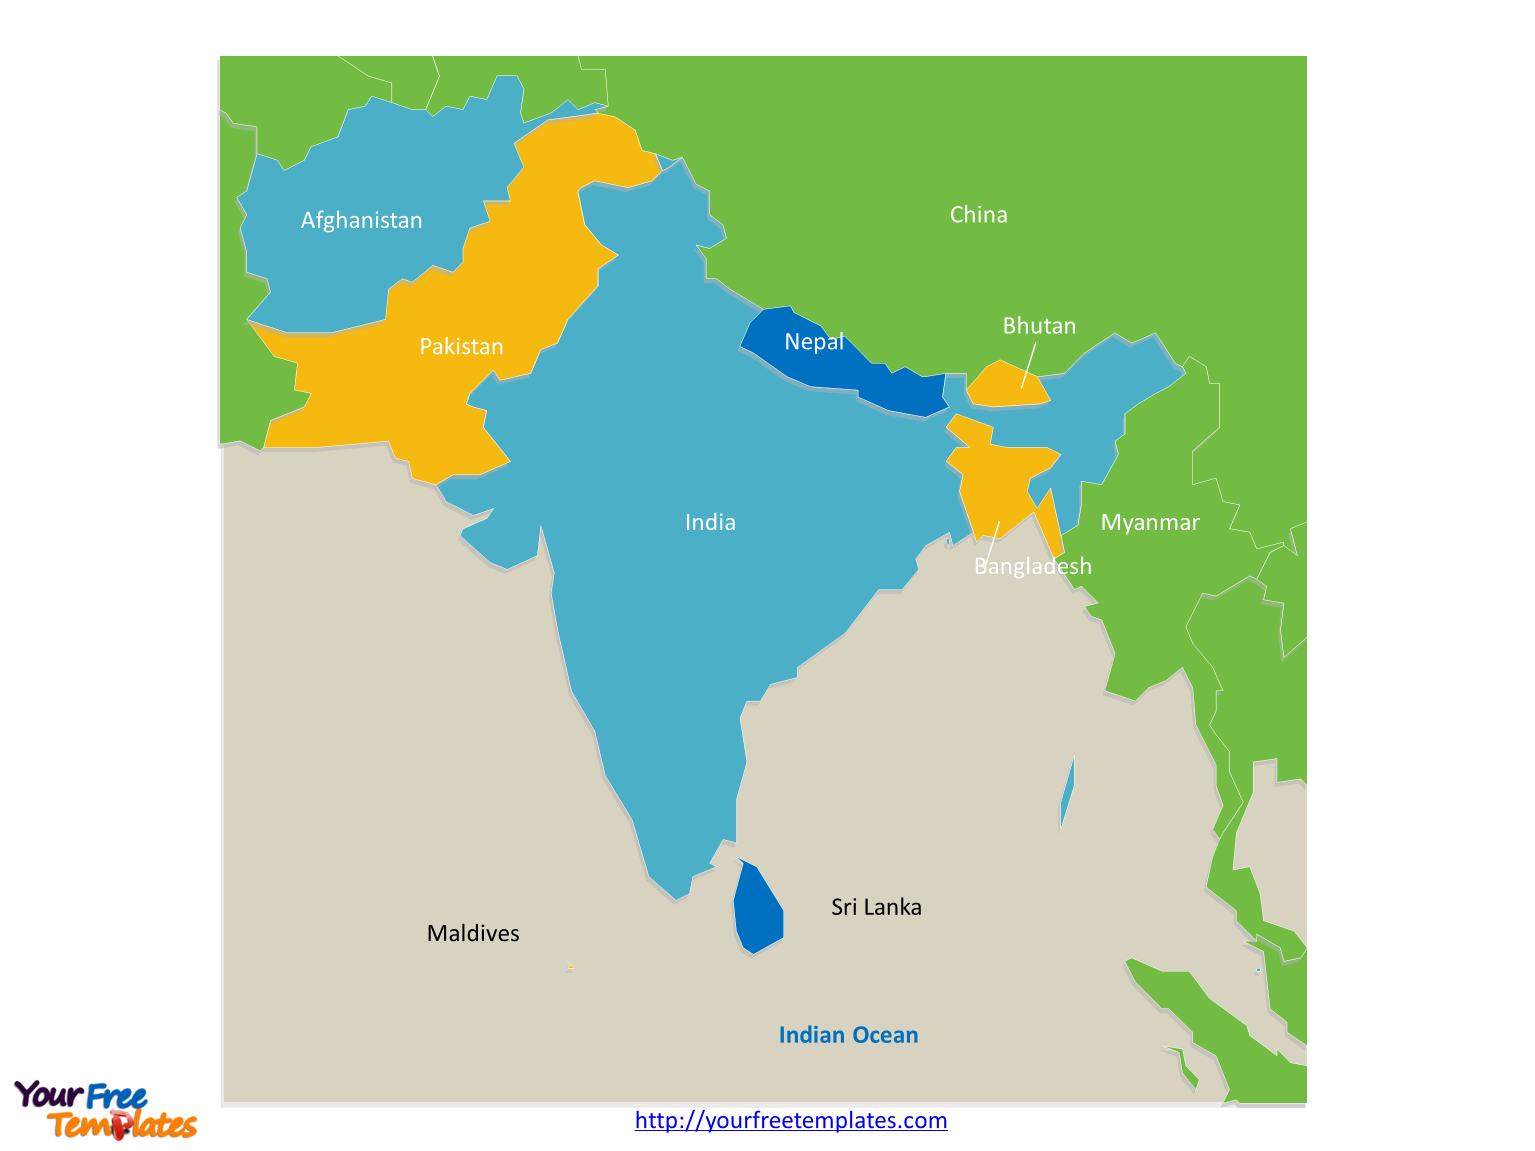 south asia outline map labeled with country names